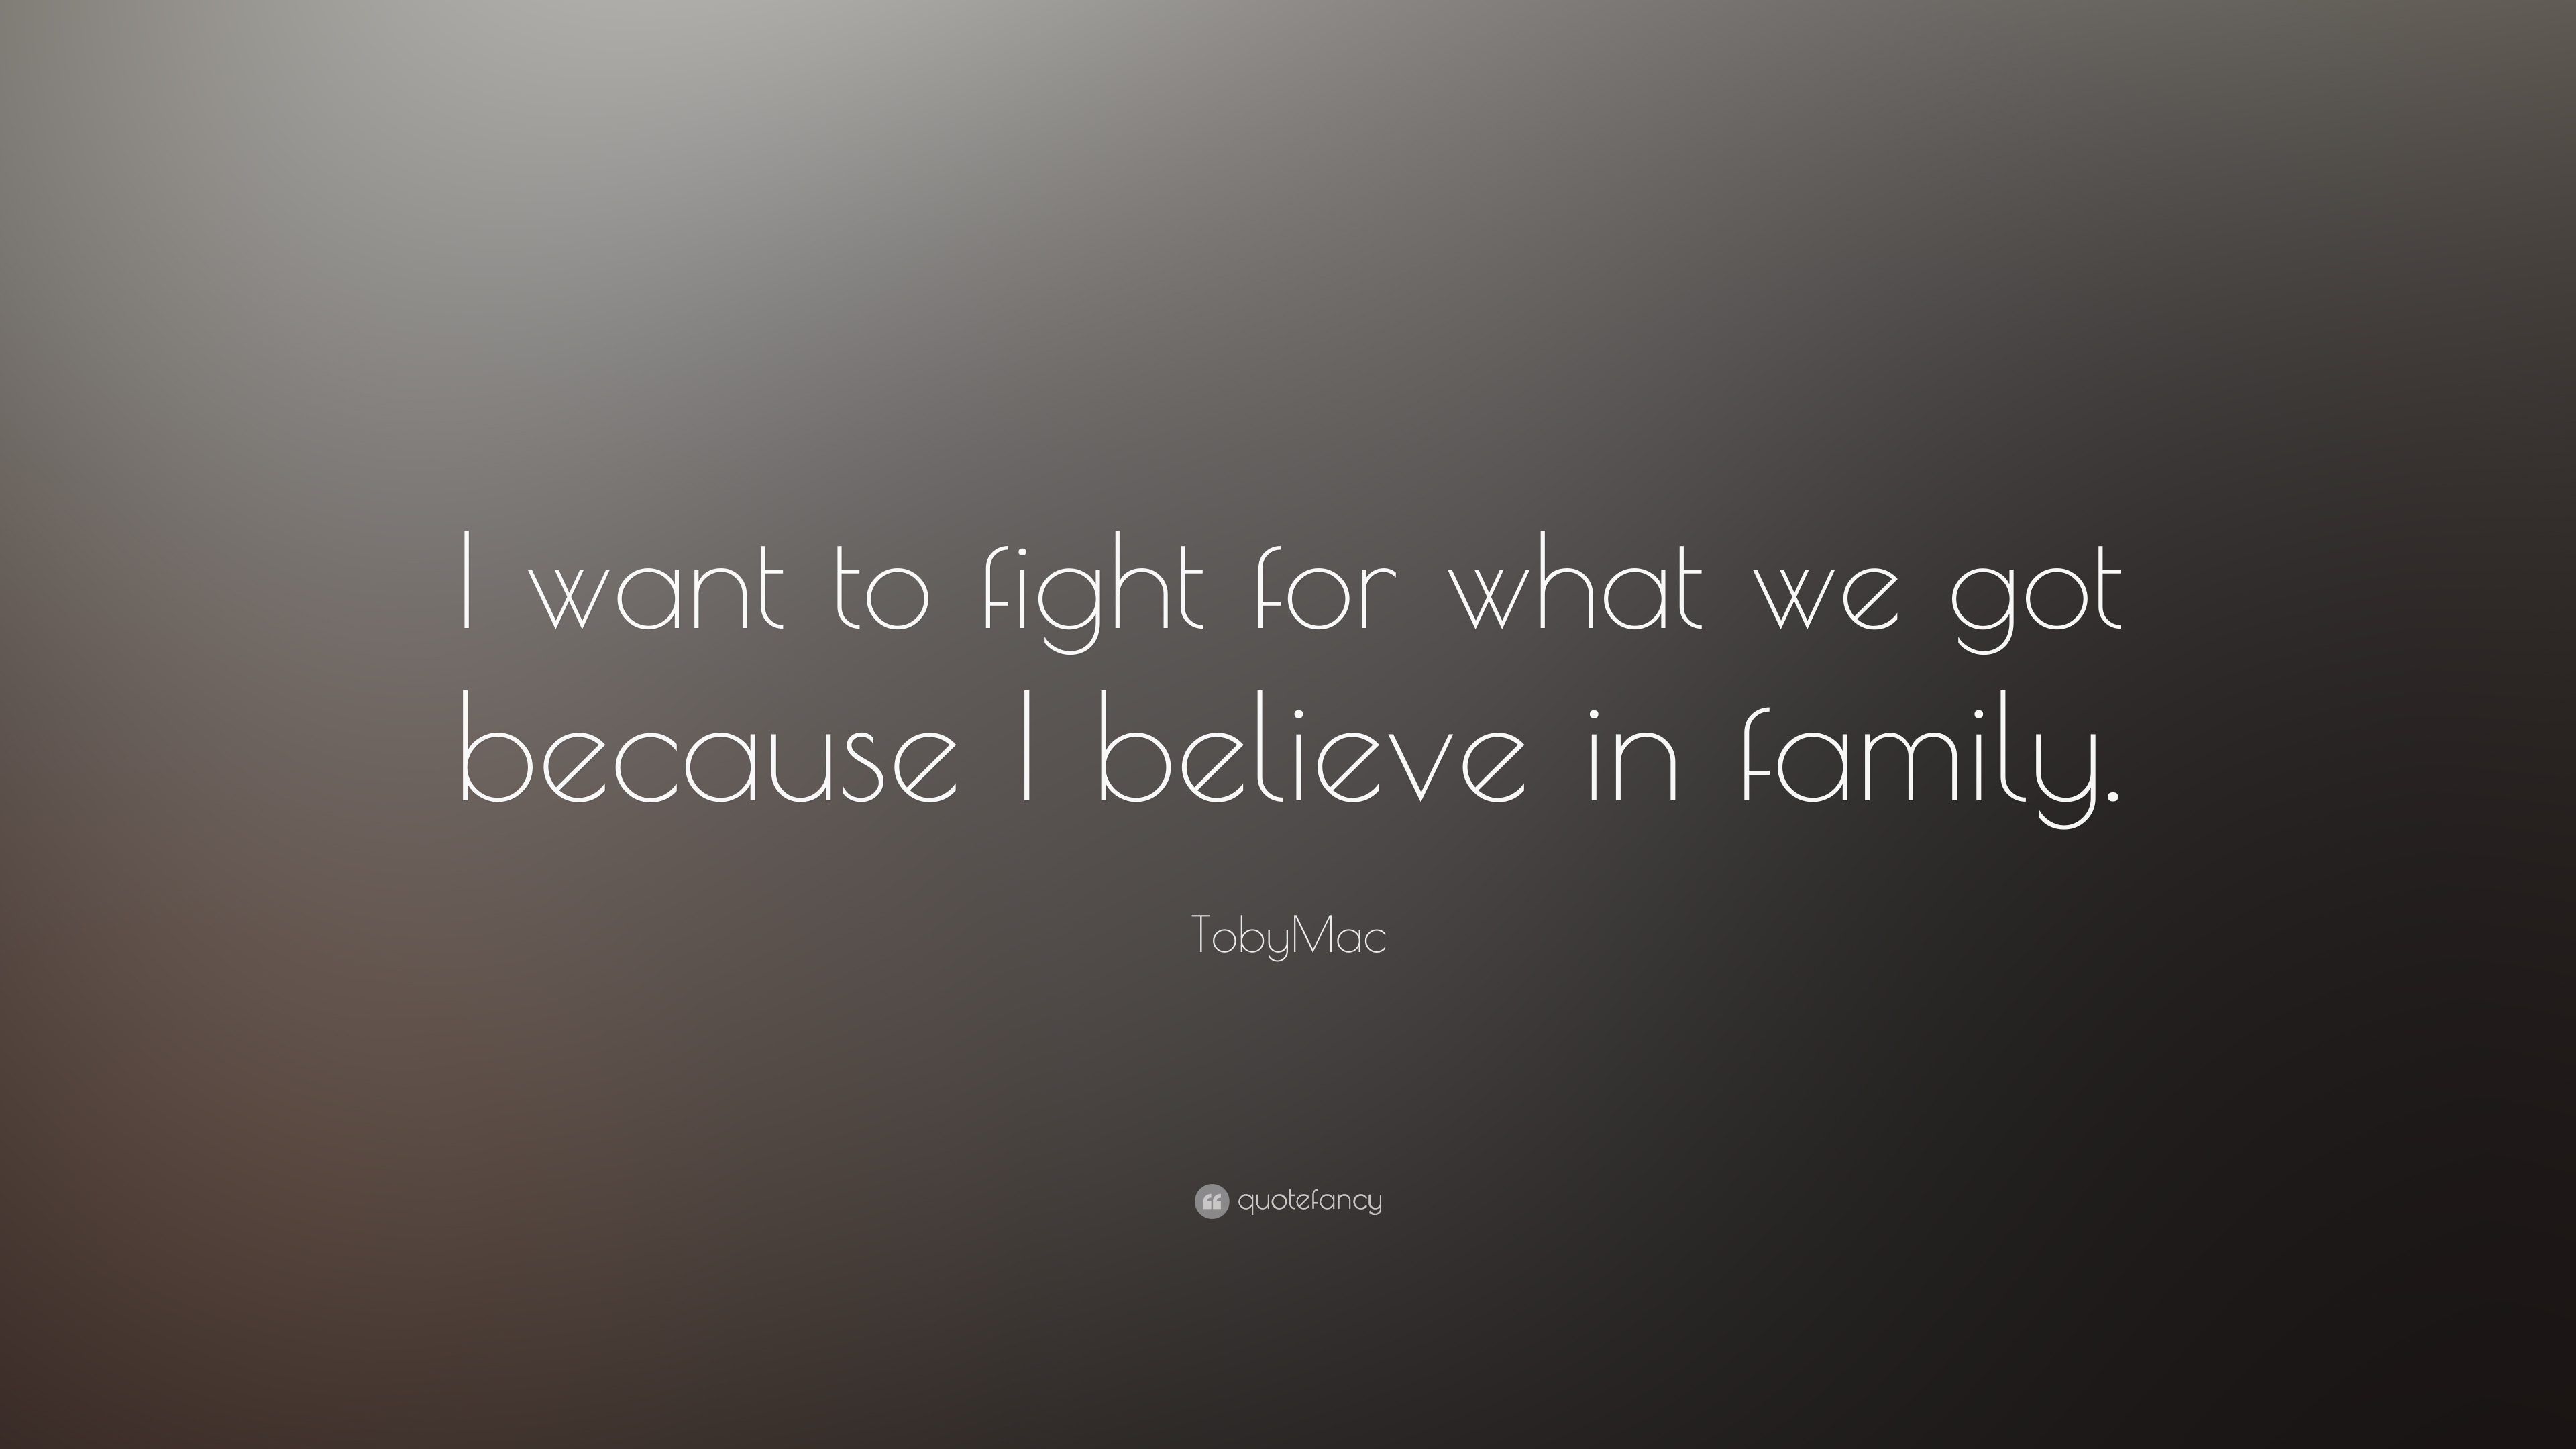 TobyMac Quotes (14 Wallpapers)